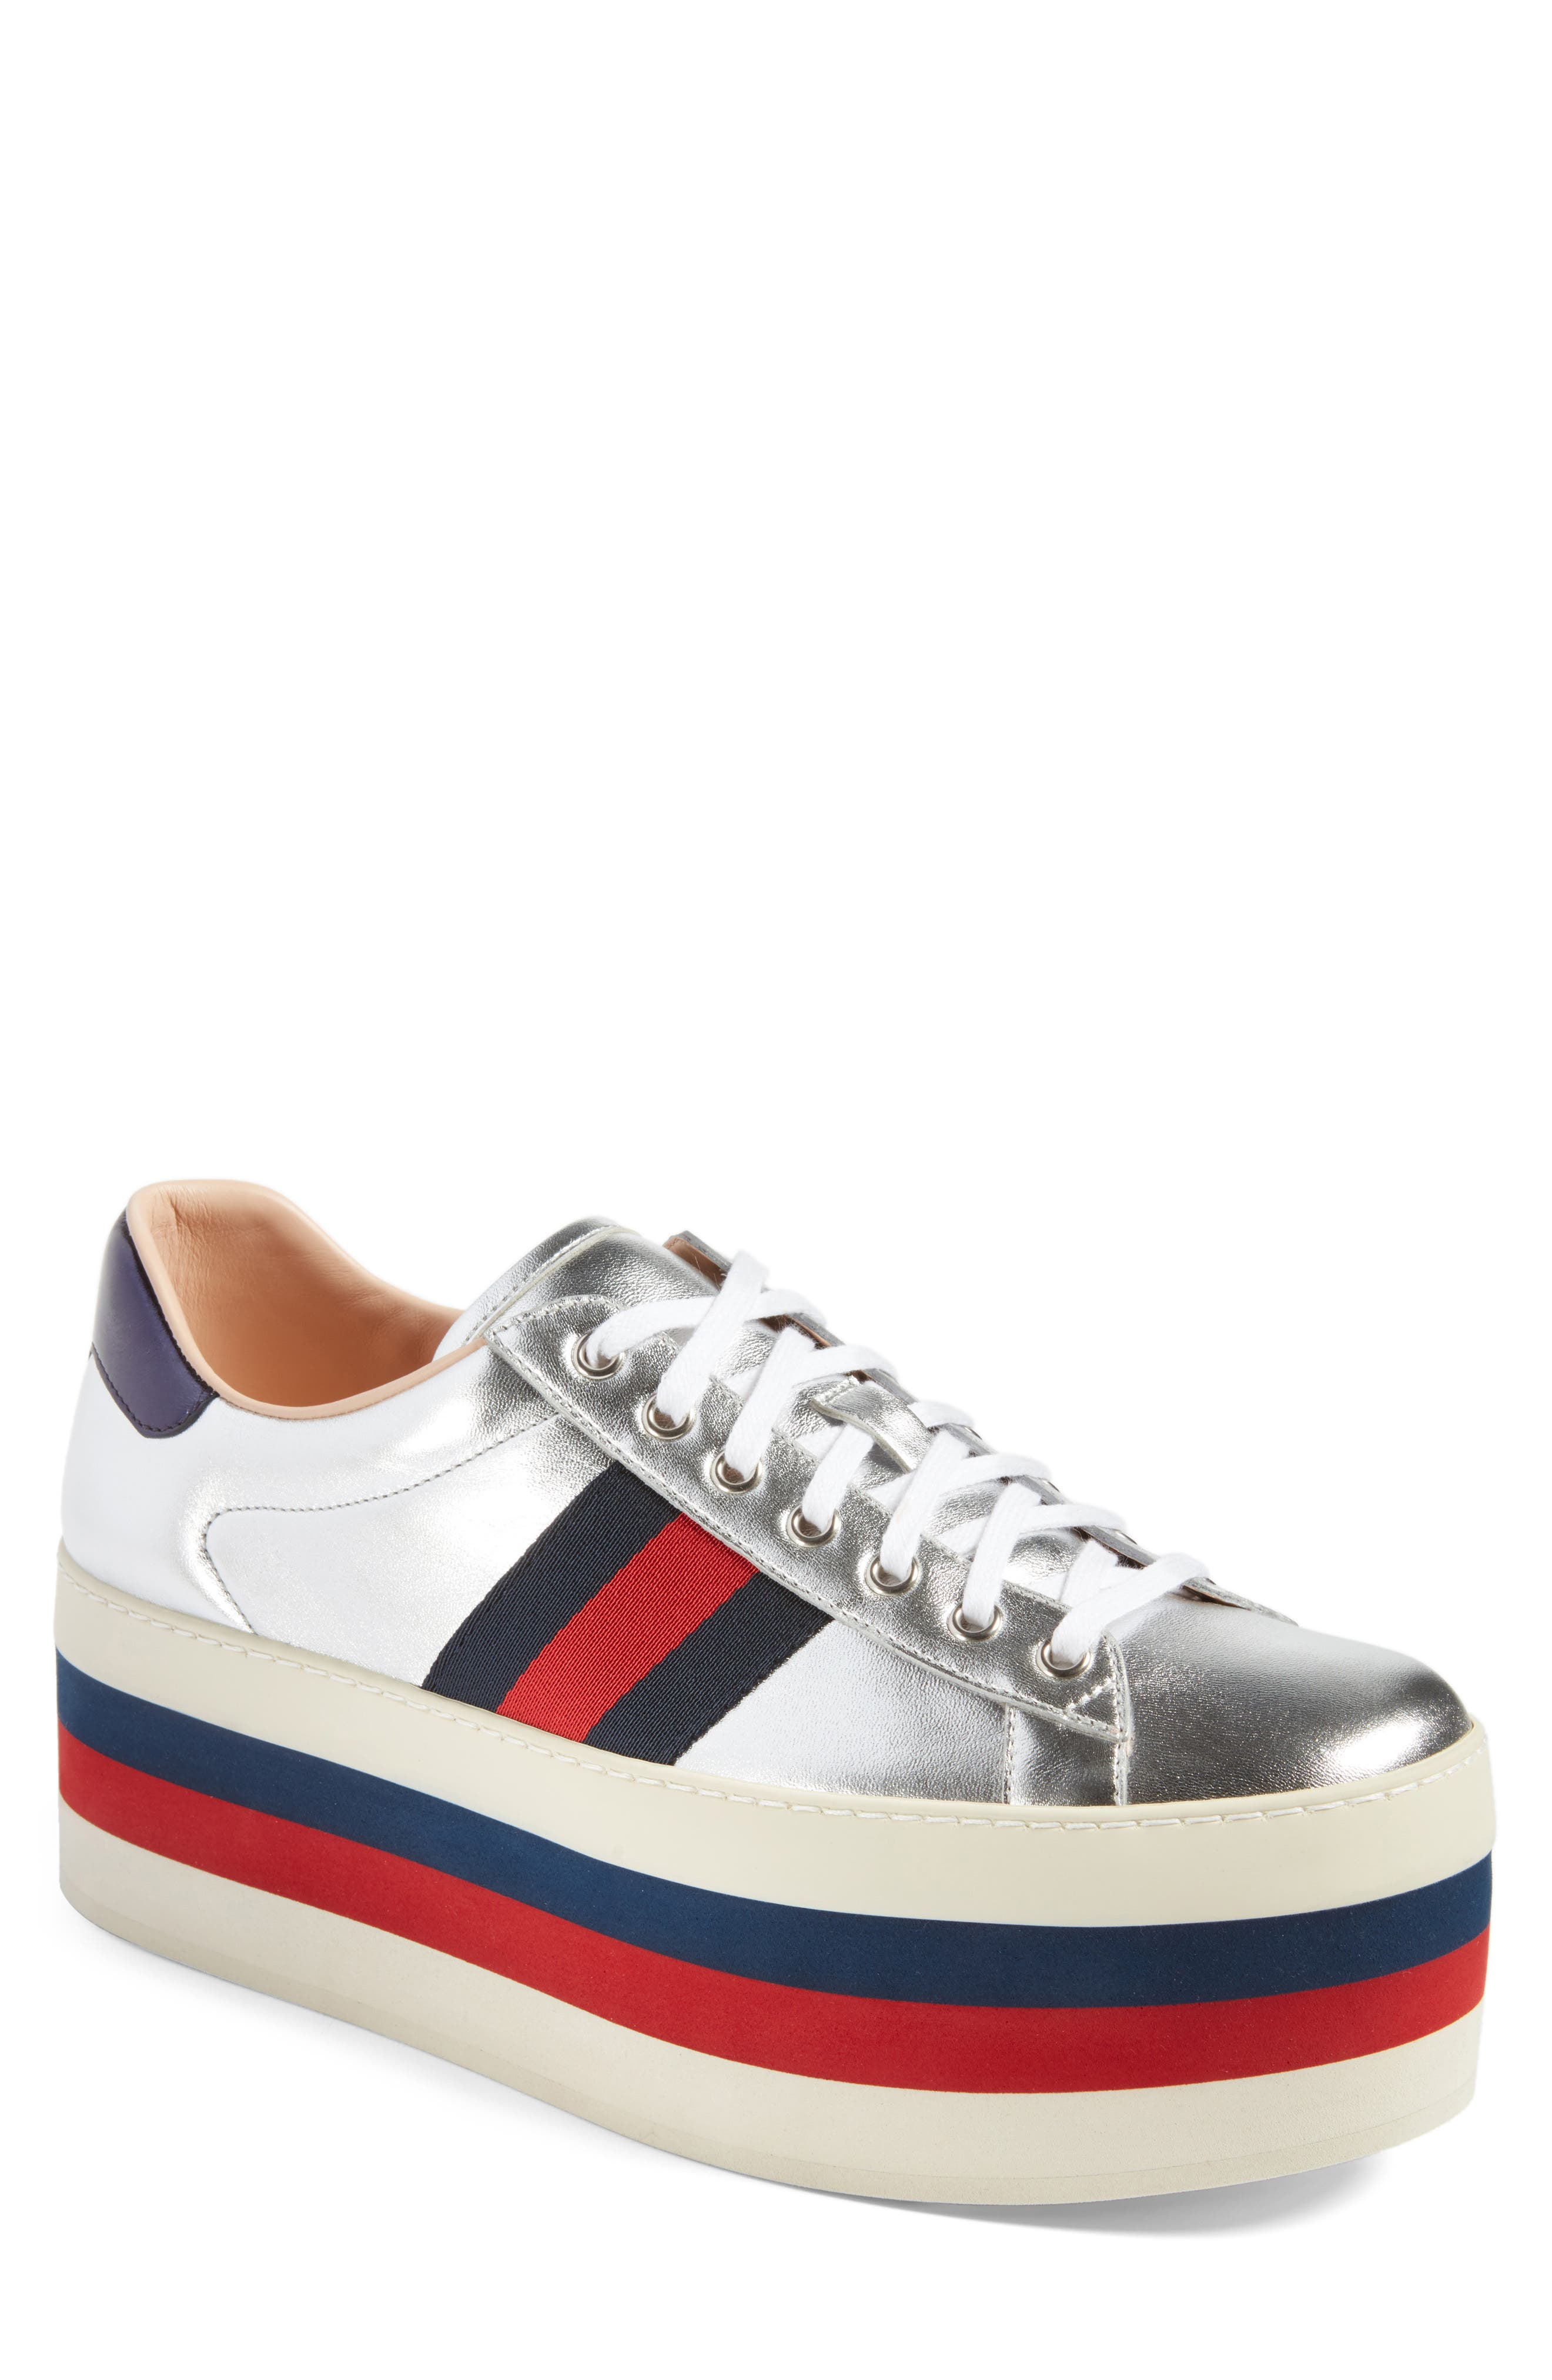 New Ace Platform Sneaker,                         Main,                         color, Silver Multi